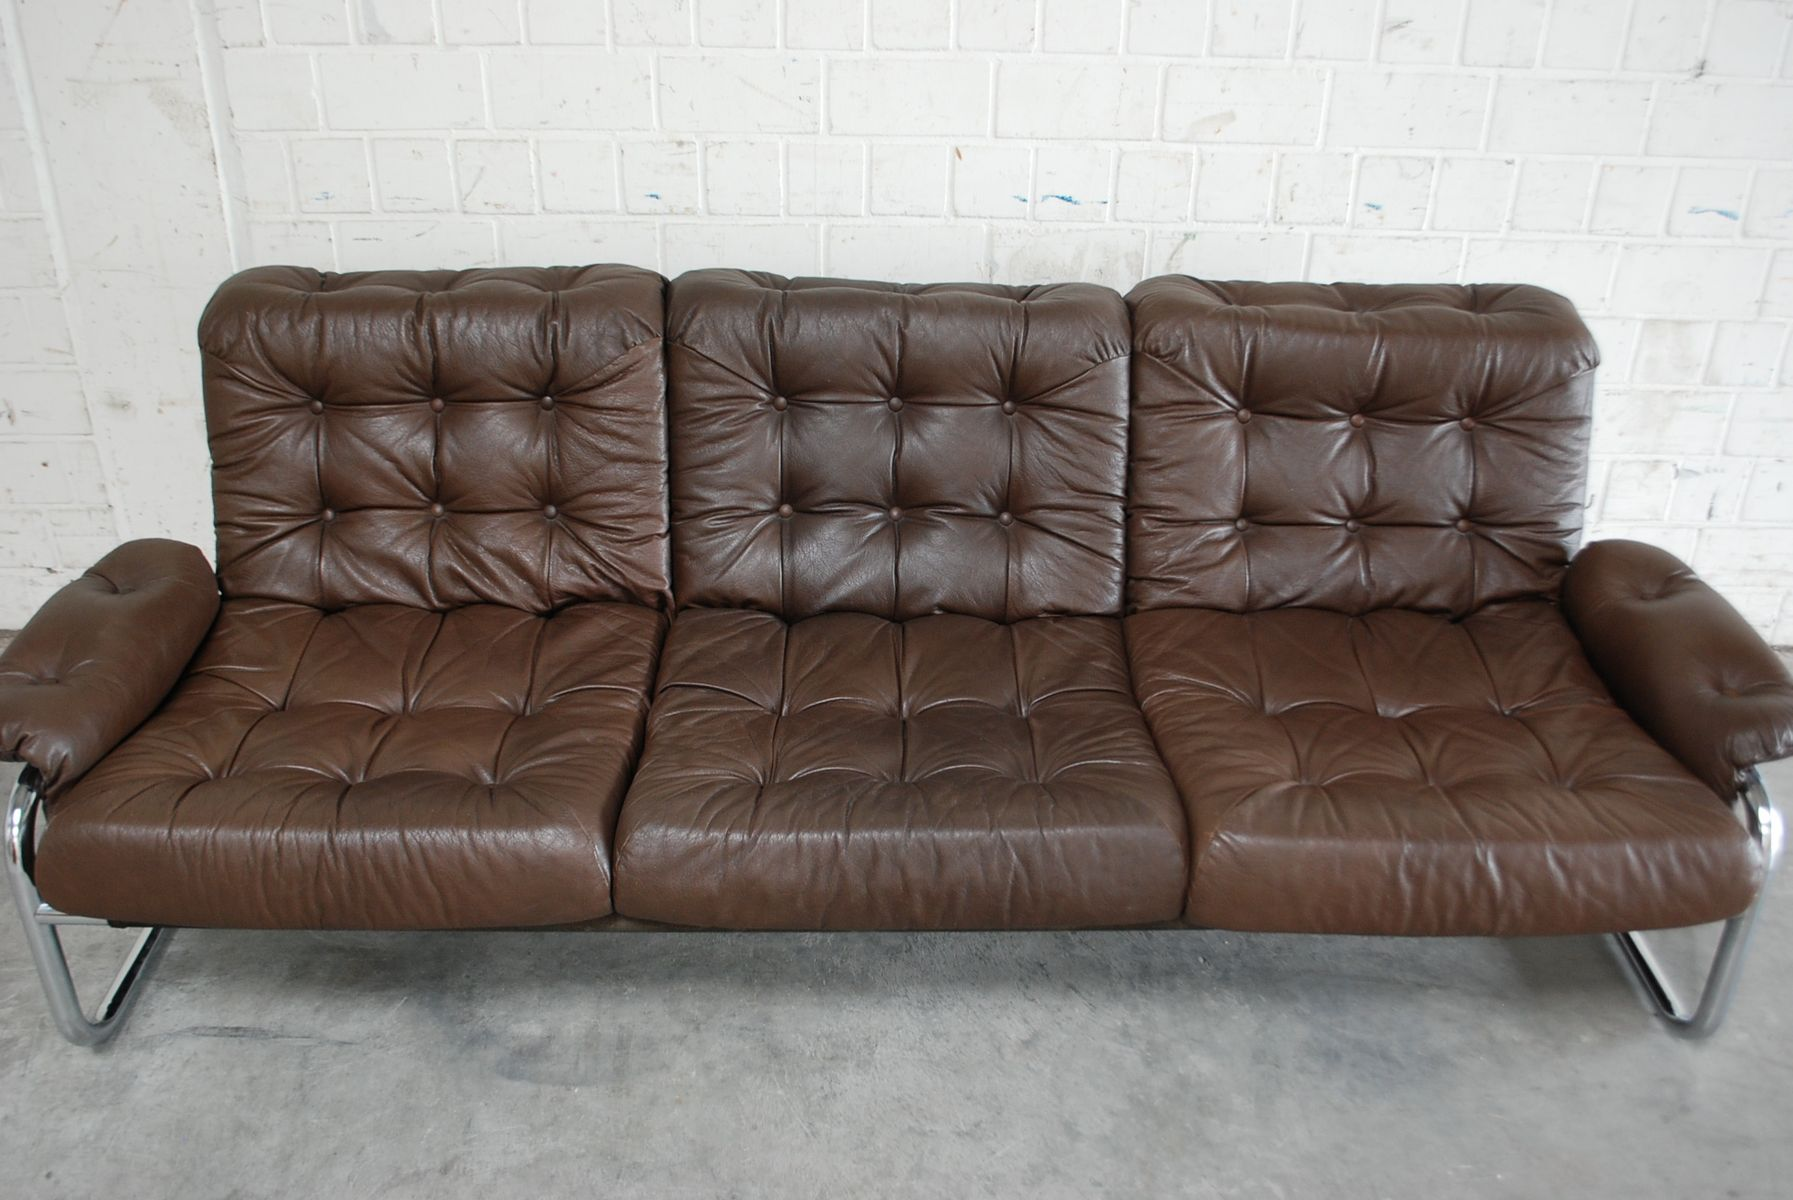 Vintage Leather U0026 Chrome Sofa From Ikea